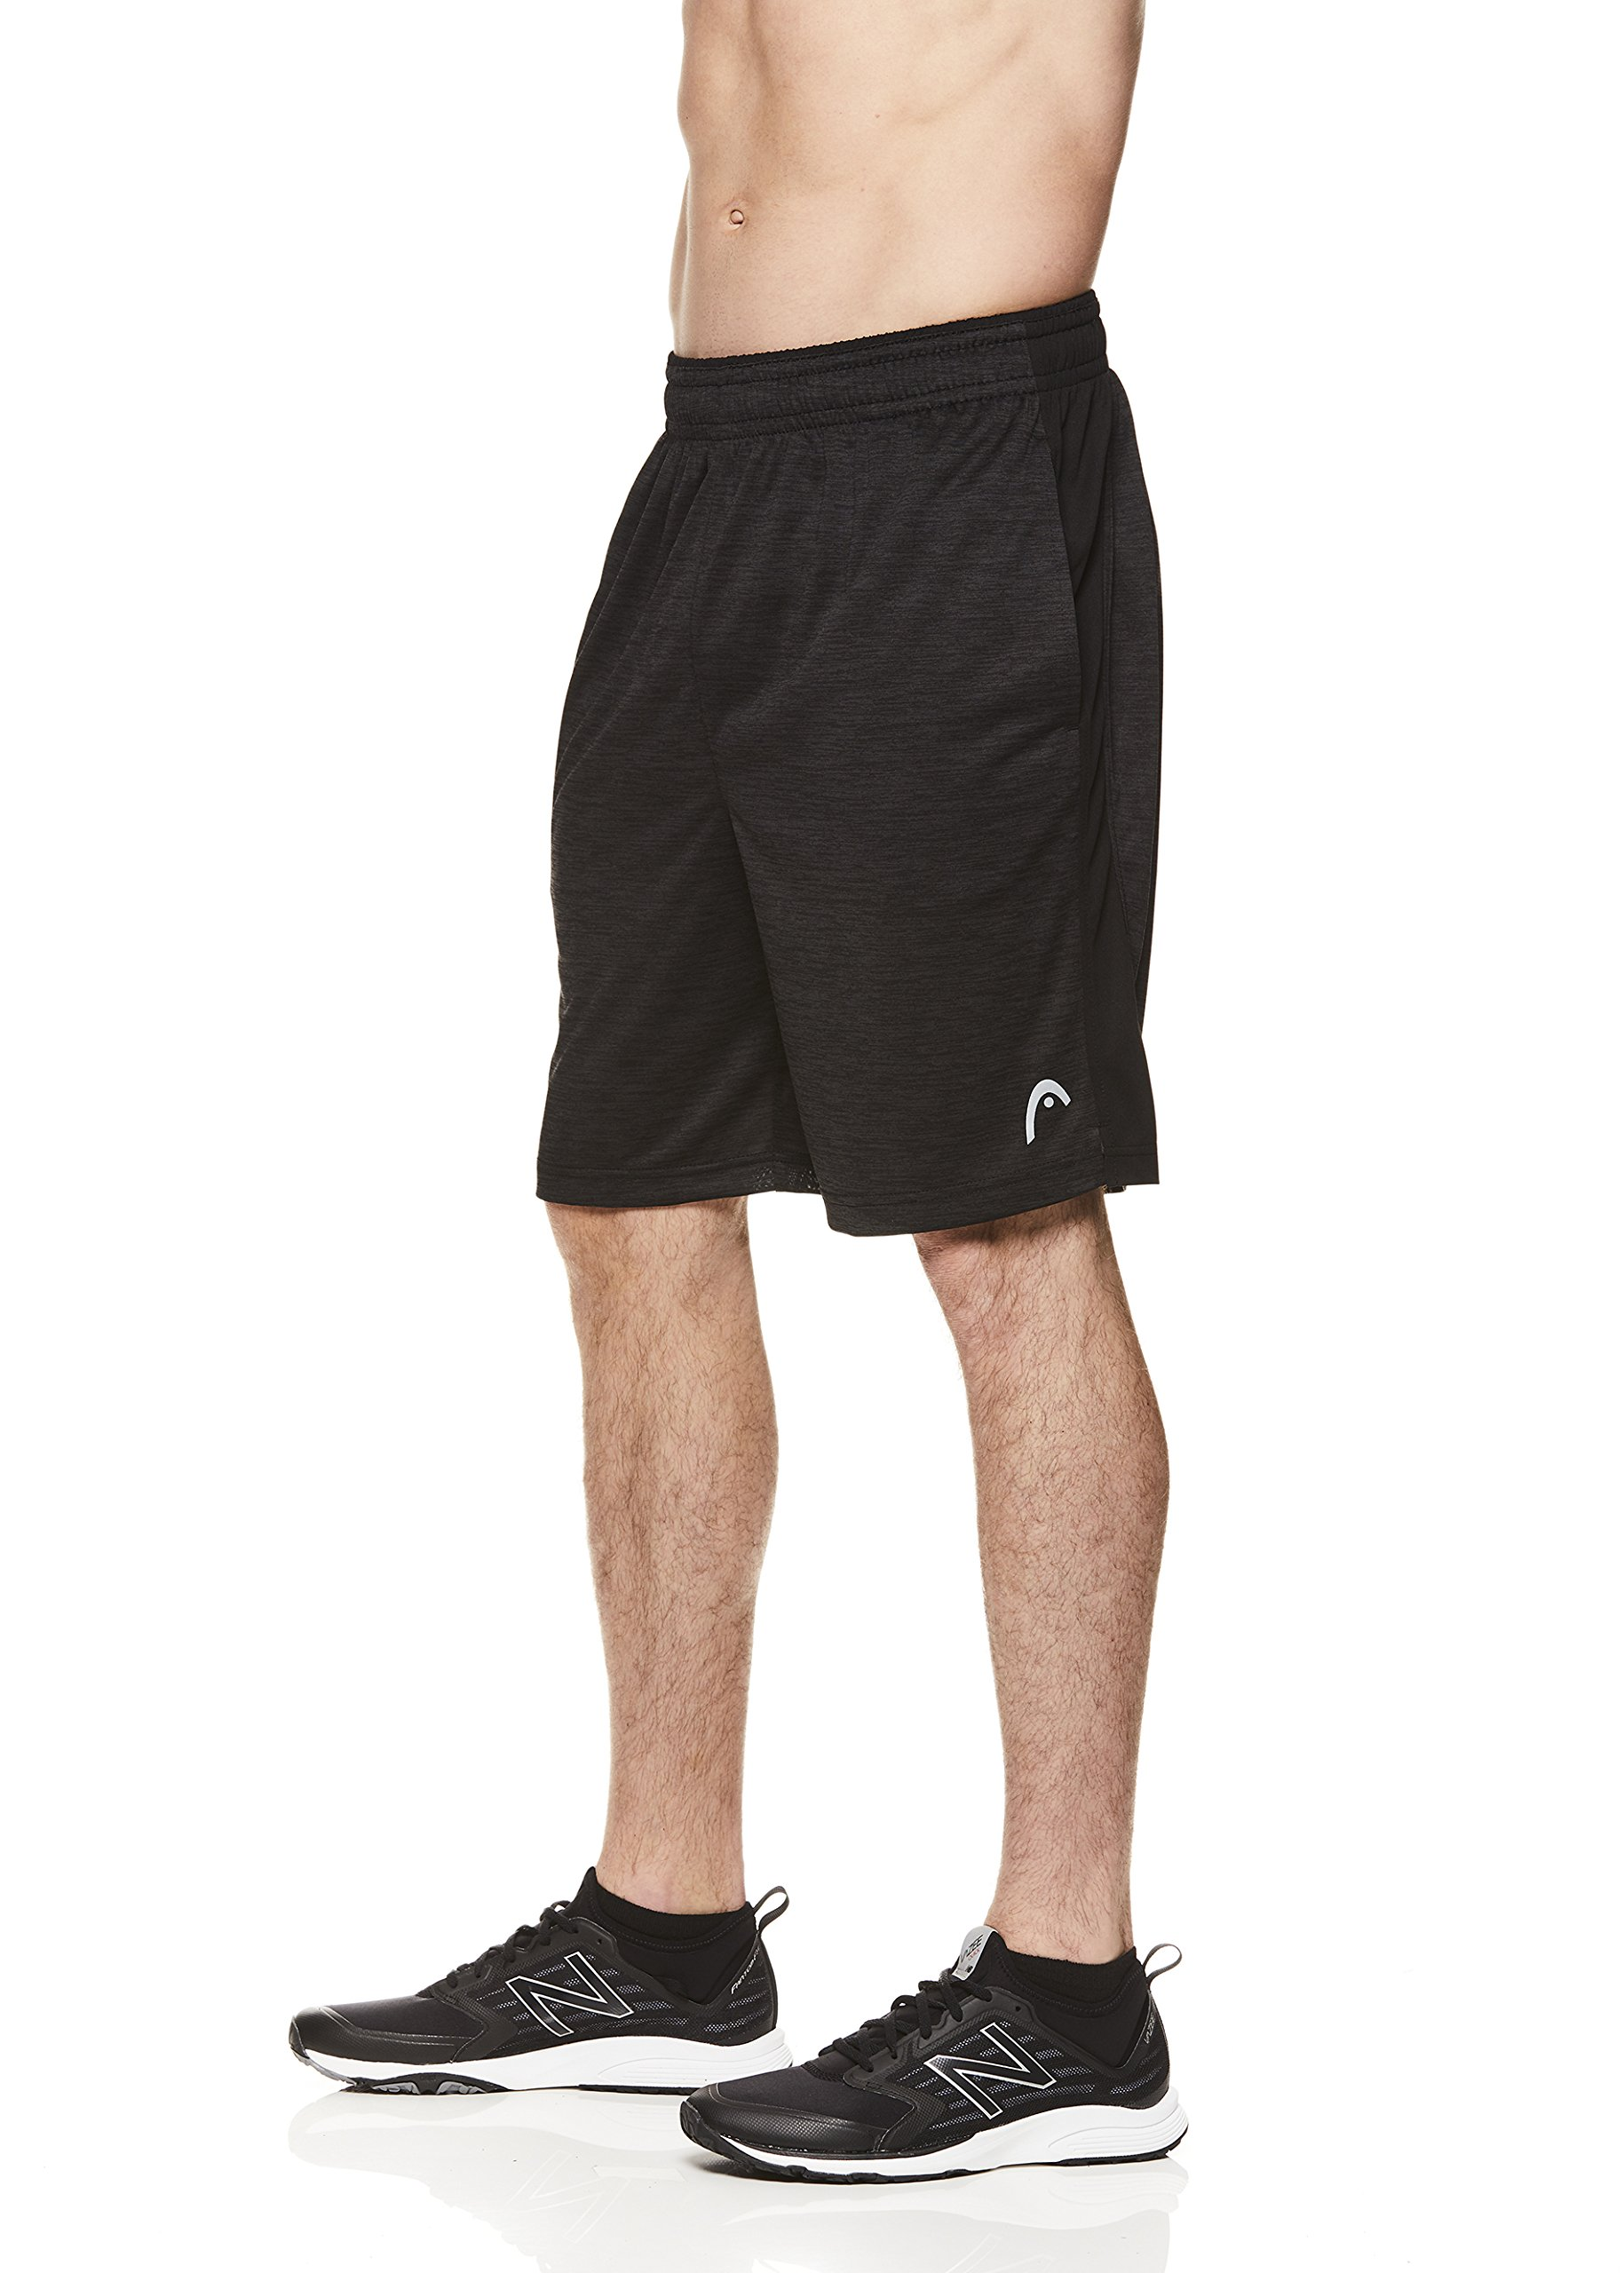 HEAD Men's Polyester Workout Gym & Running Shorts w/Elastic Waistband & Drawstring - Firestarter Black Heather, 2X